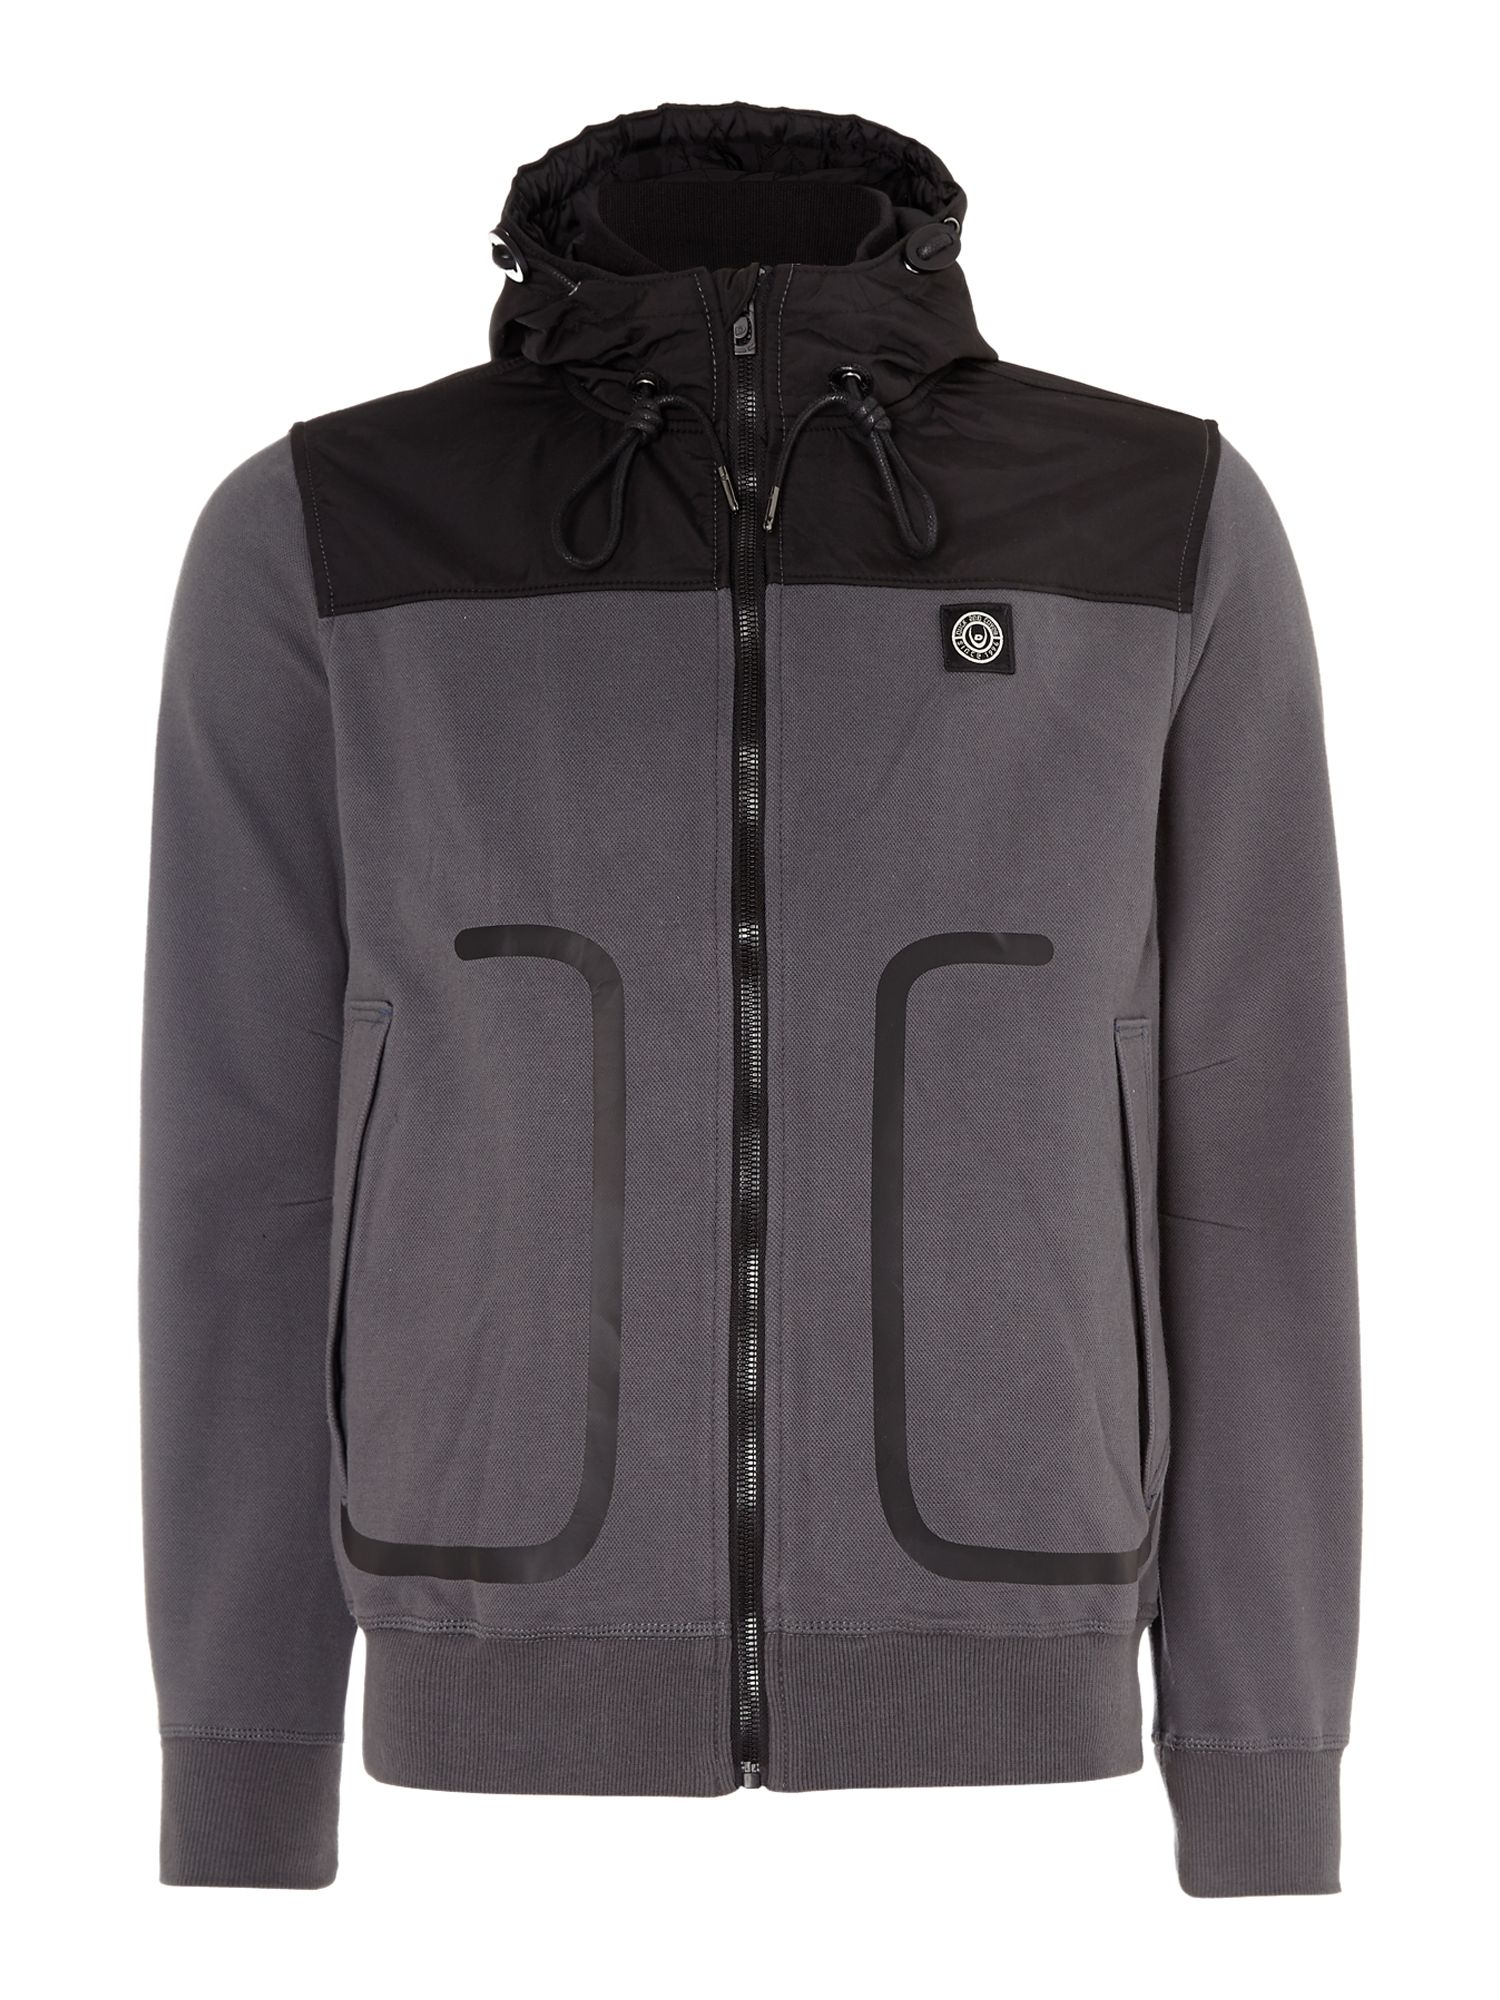 Sandor technical pique zip up hoody